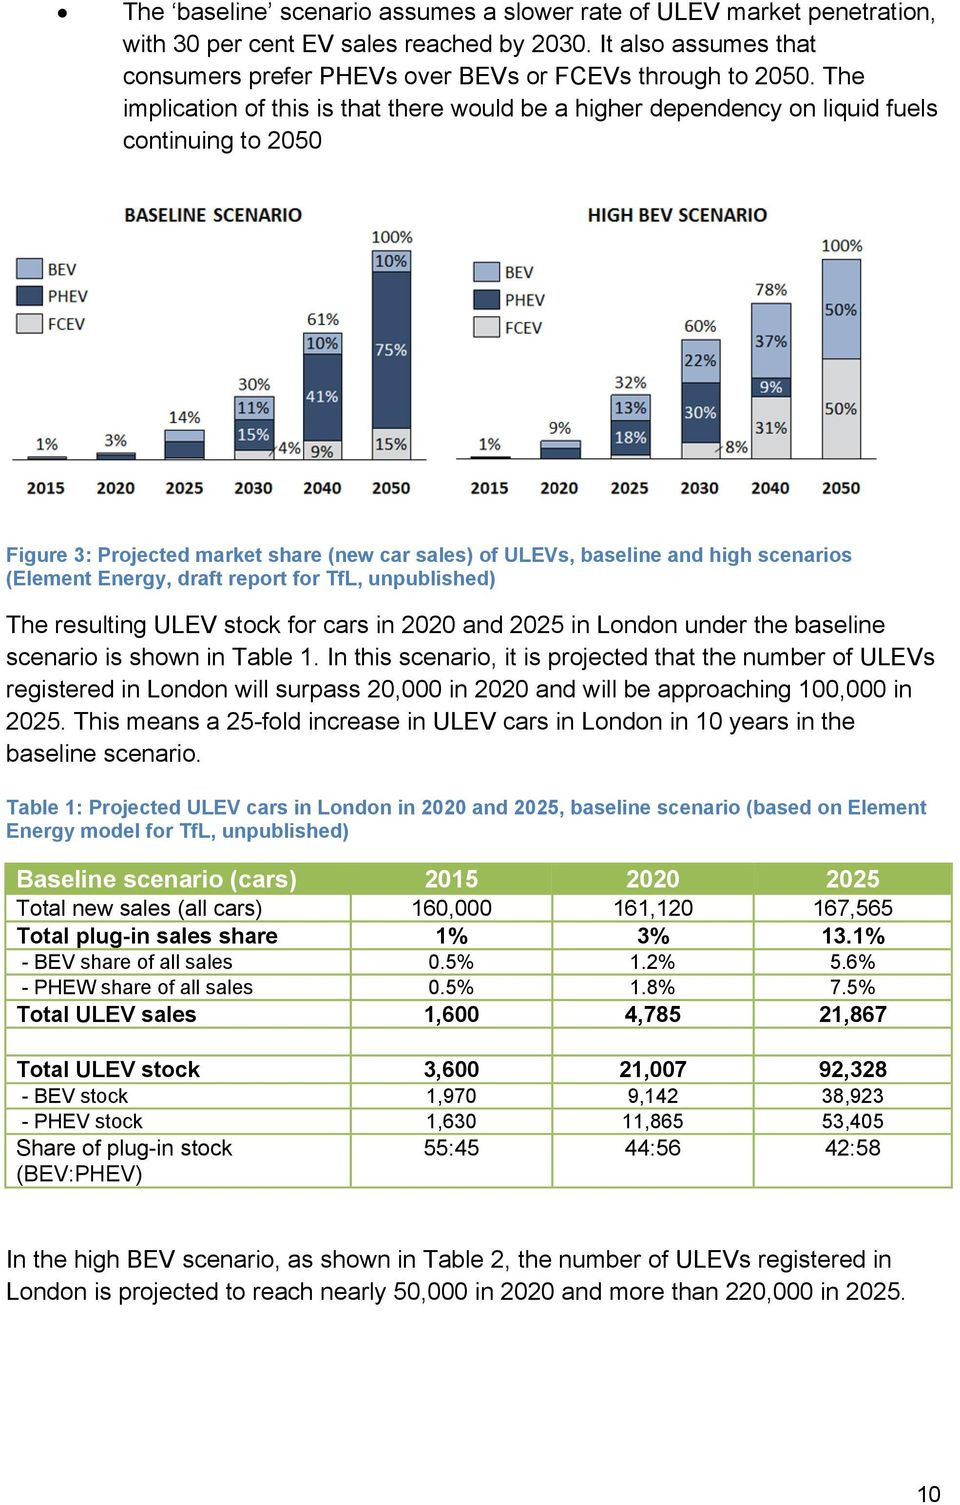 Energy, draft report for TfL, unpublished) The resulting ULEV stock for cars in 2020 and 2025 in London under the baseline scenario is shown in Table 1.